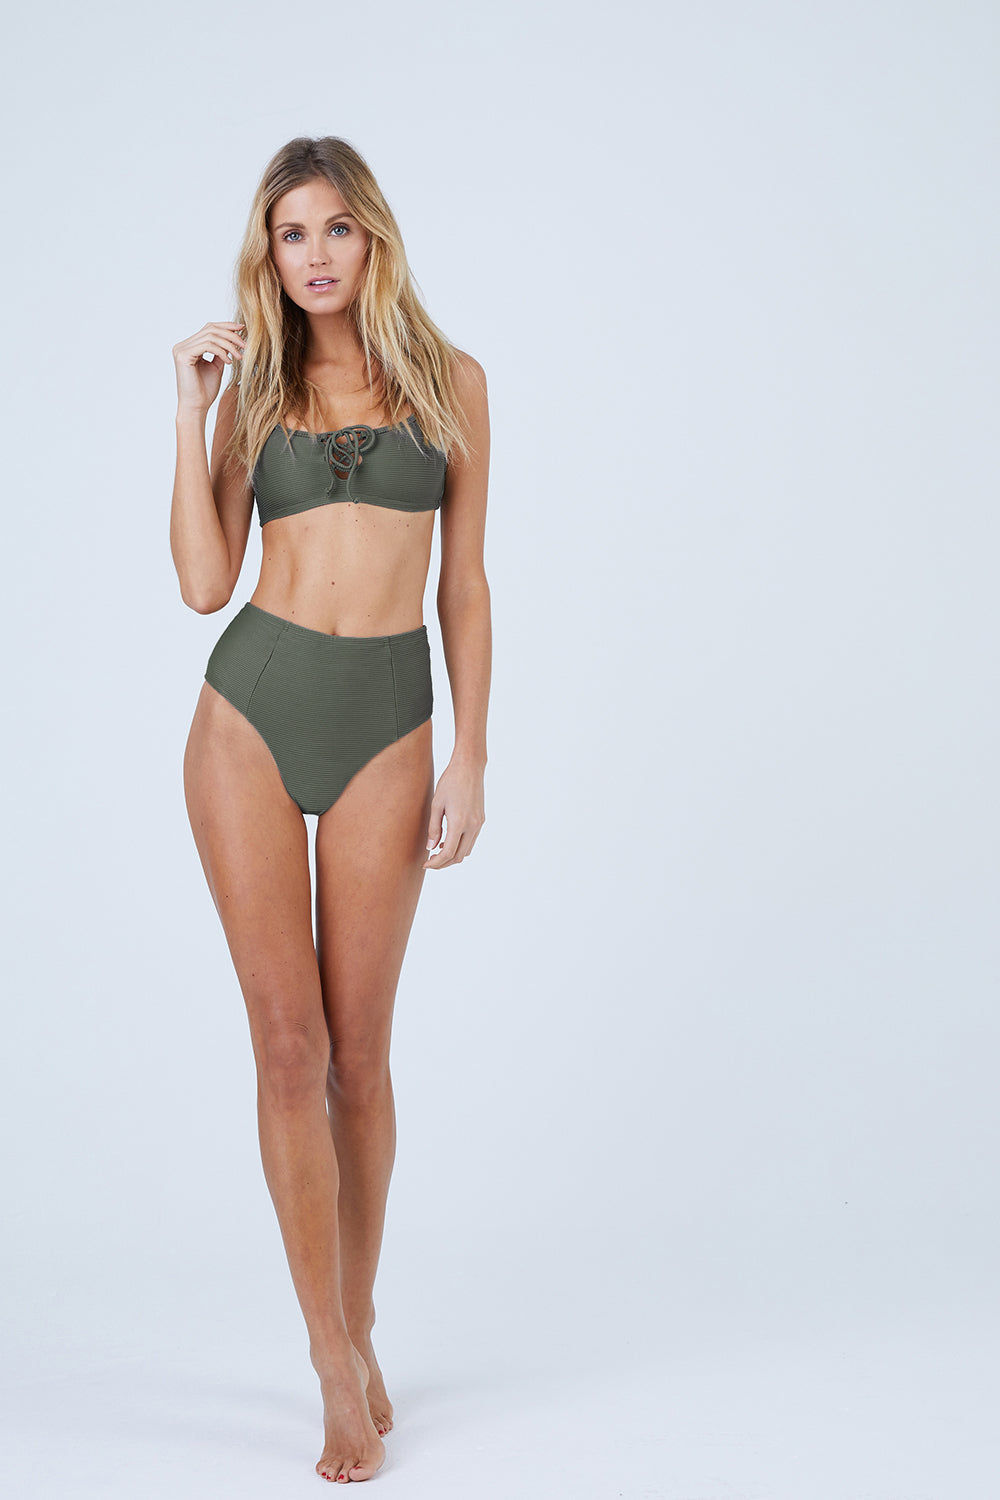 ONIA Leah High Waisted Bikini Bottom - Forest Green Rib Bikini Bottom   Forest Green Rib  Onia Leah High Waisted Bikini Bottom - Forest High Waisted  High Cut Leg  Princess Seams  Ribbed Fabric  Moderate Coverage Front View